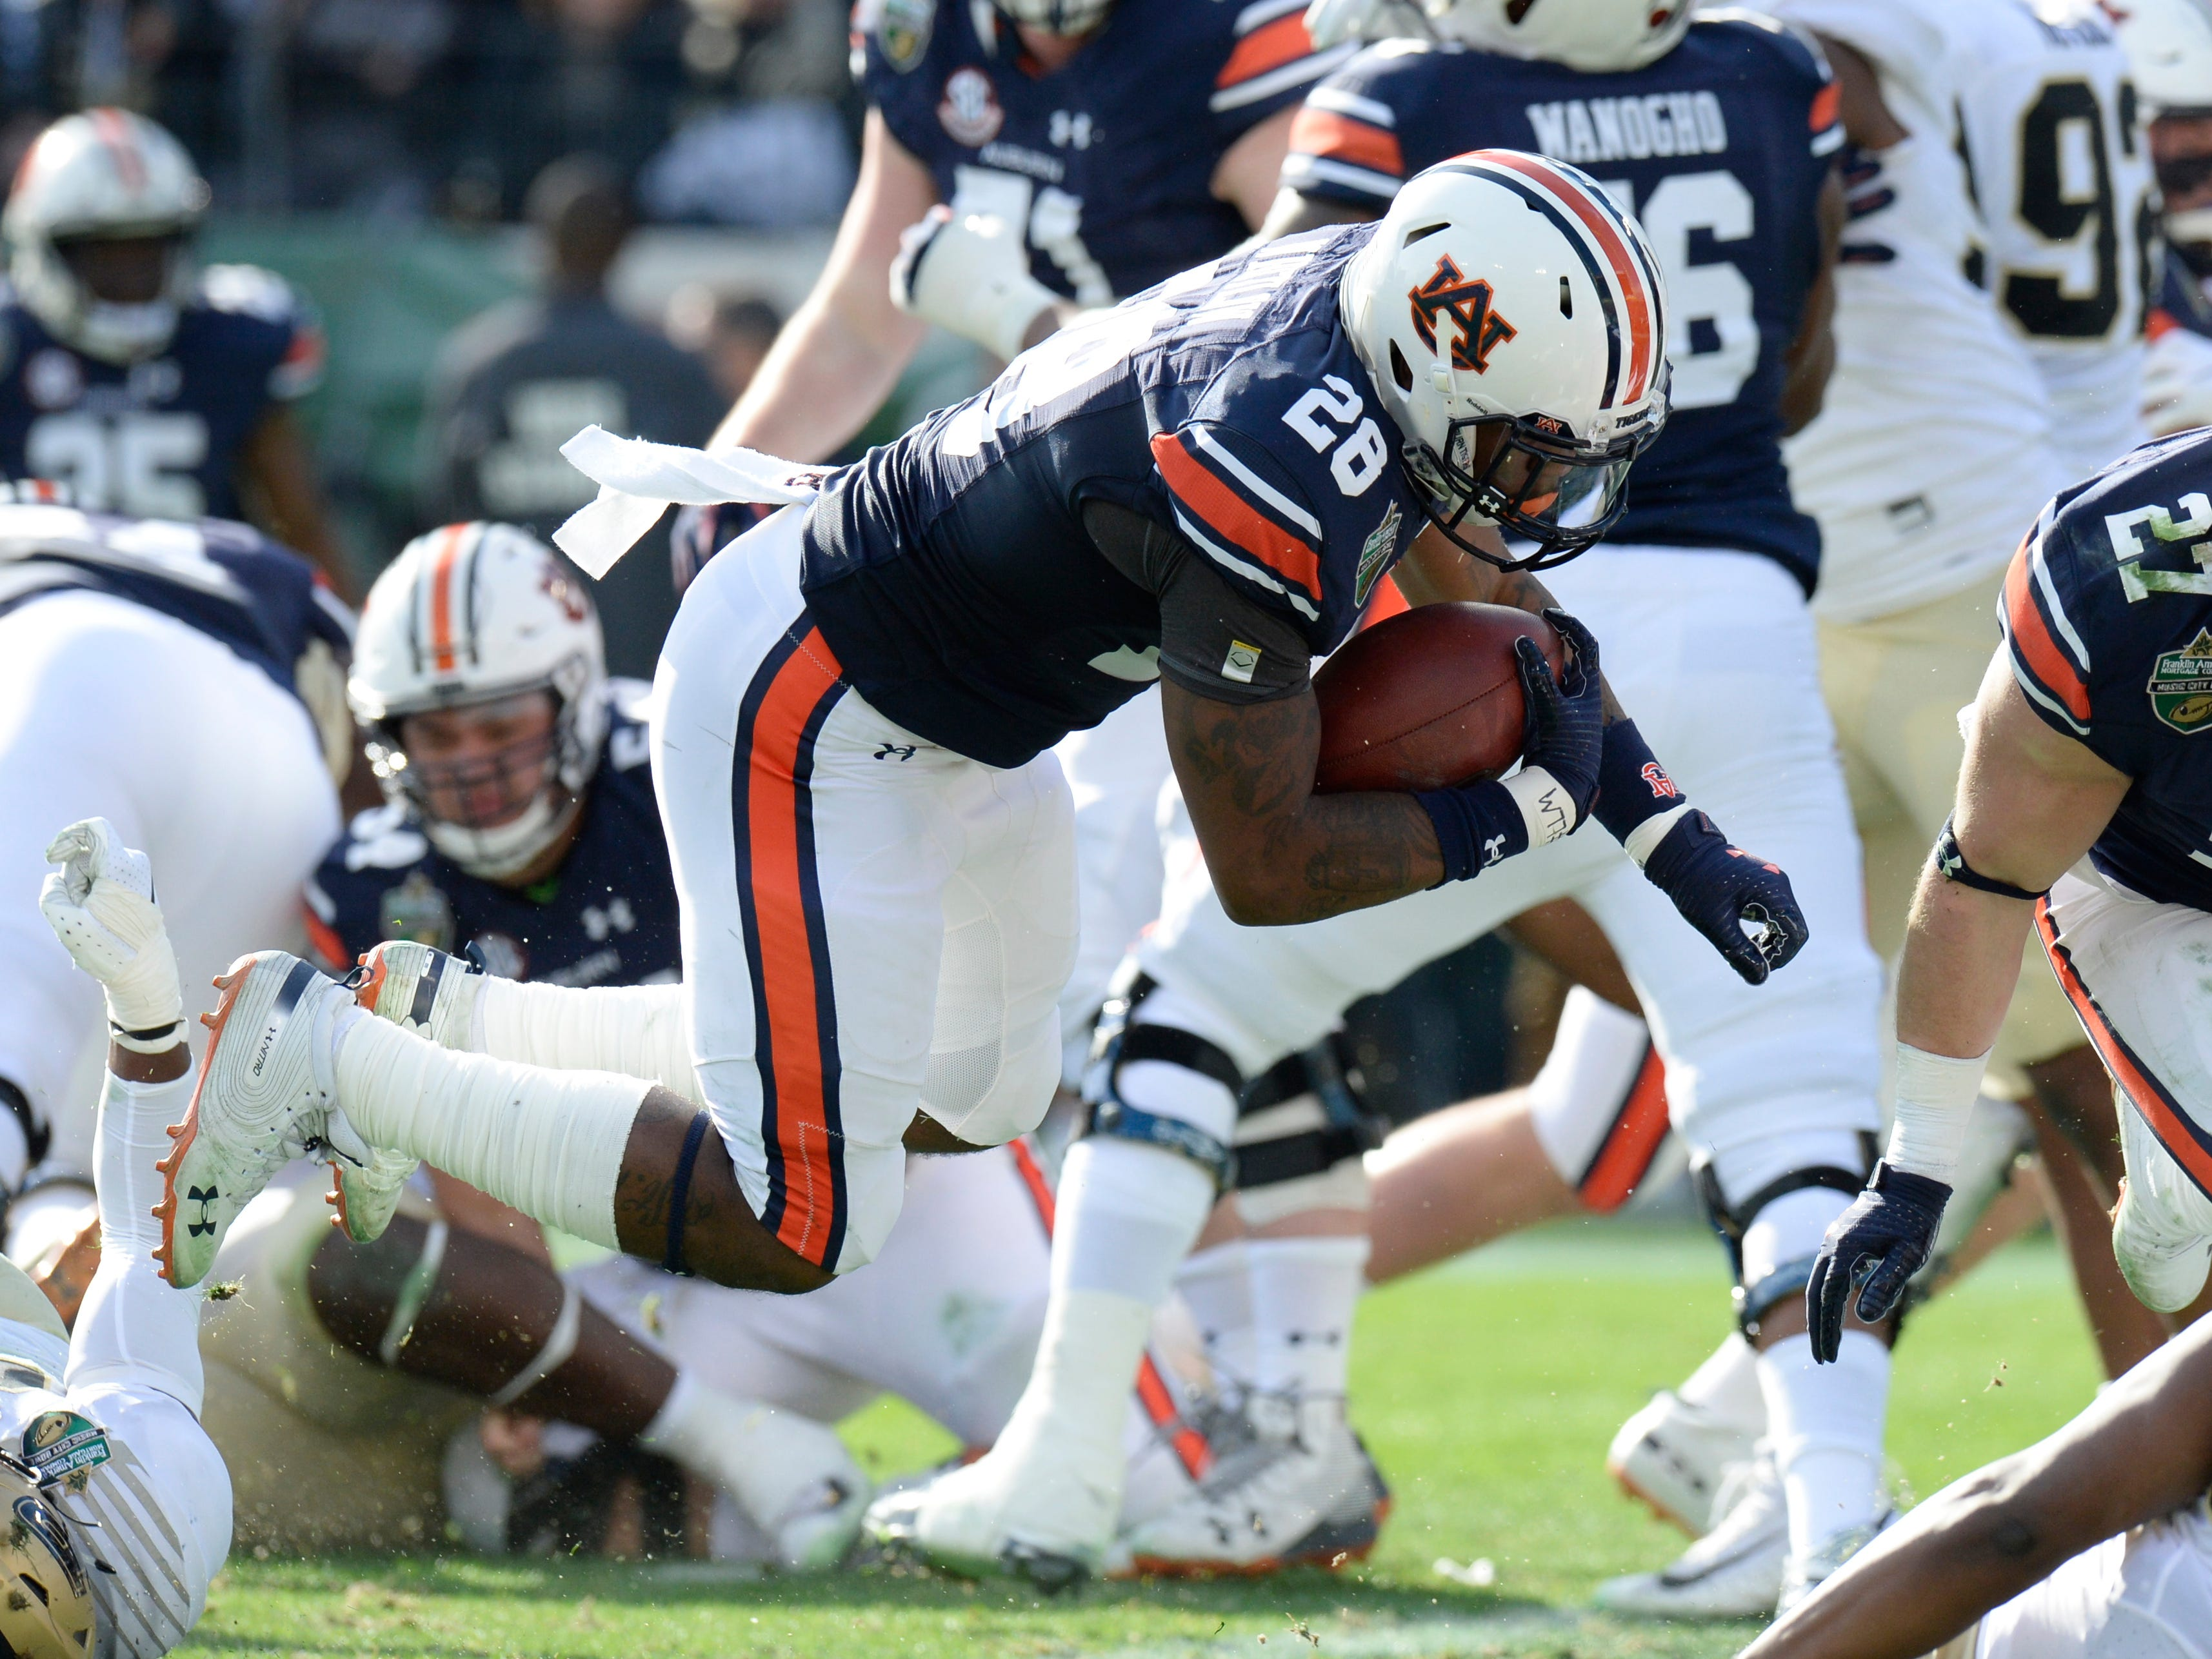 Auburn running back JaTarvious Whitlow (28) goes in for his third touchdown of the first quarter of the Music City Bowl NCAA college football game Friday, Dec. 28, 2018, at Nissan Stadium in Nashville, Tenn.